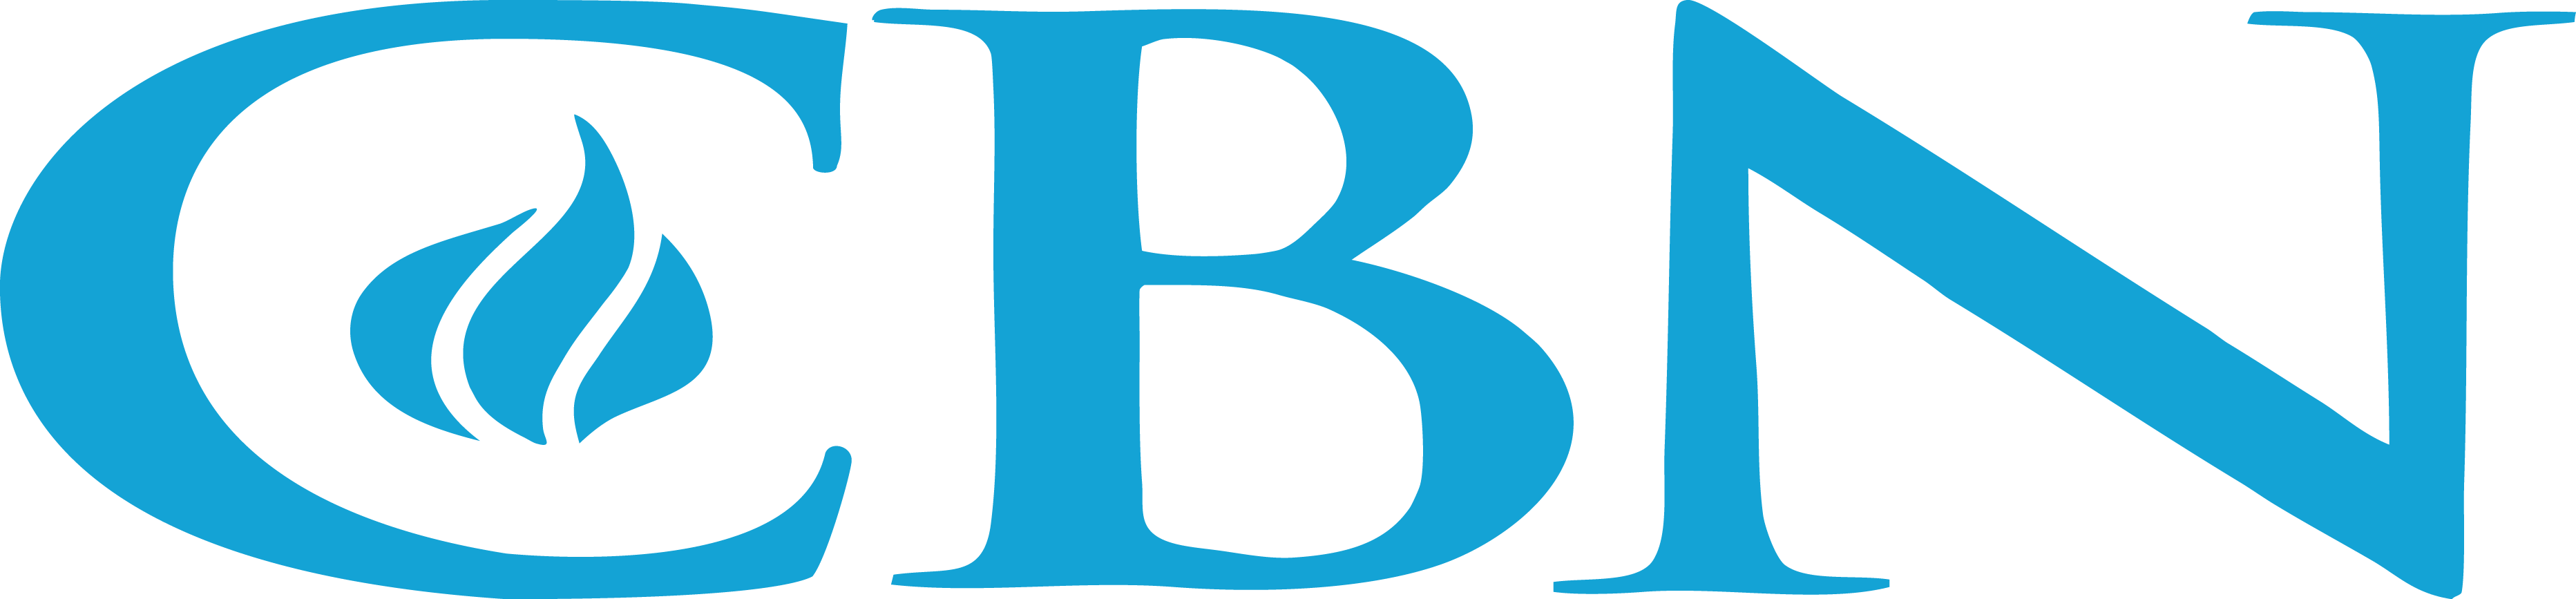 CBN-blue-vector-logo